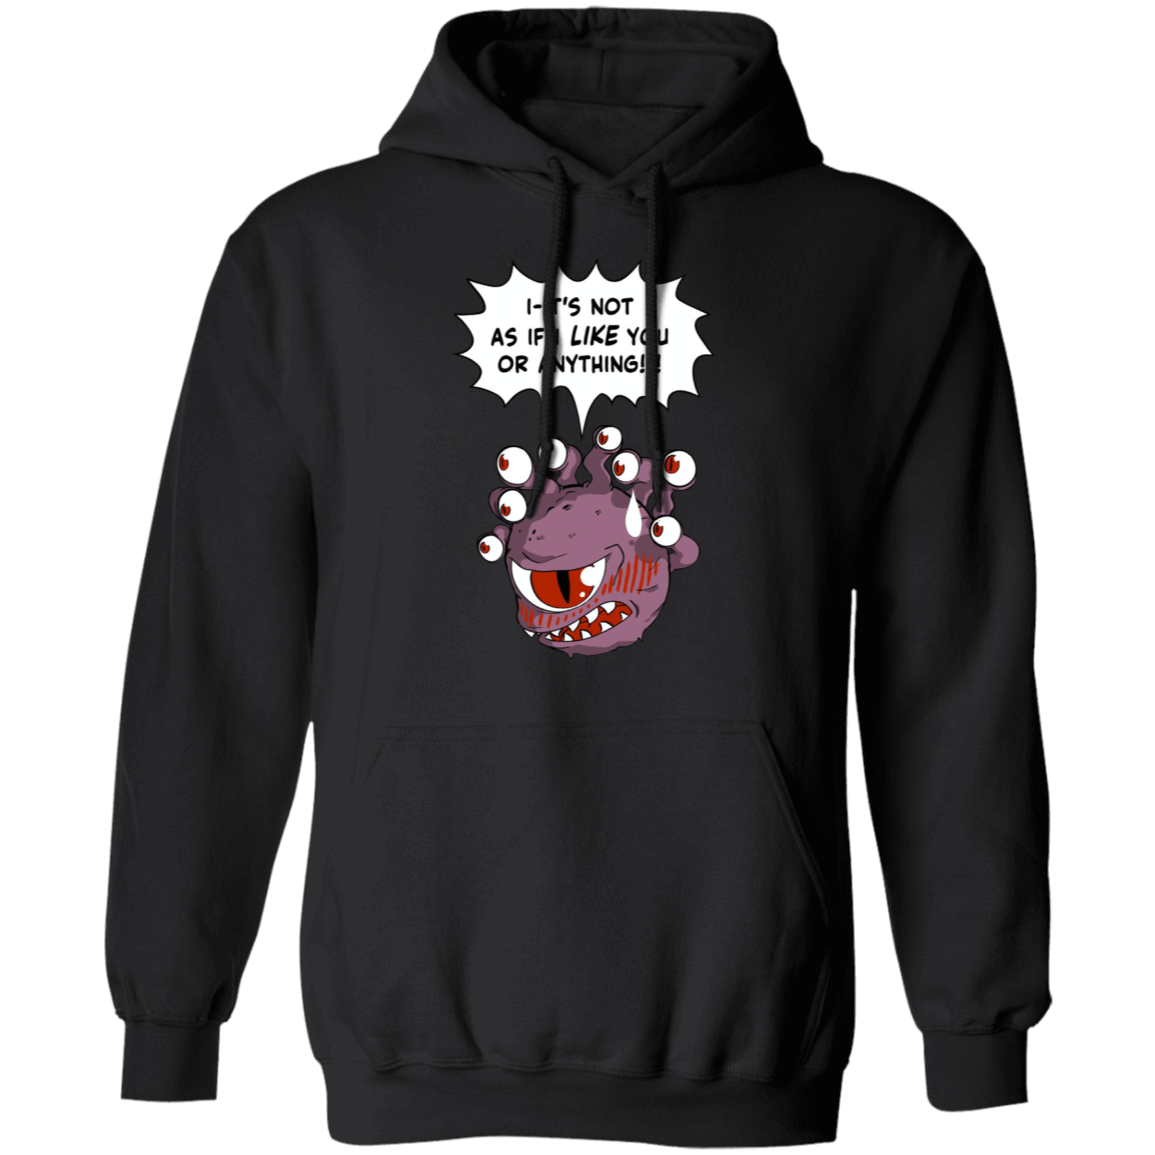 Beholder It's Not As If I Like You Or Anything T-Shirts, Hoodies 541-4740-80183257-23087 - Tee Ript